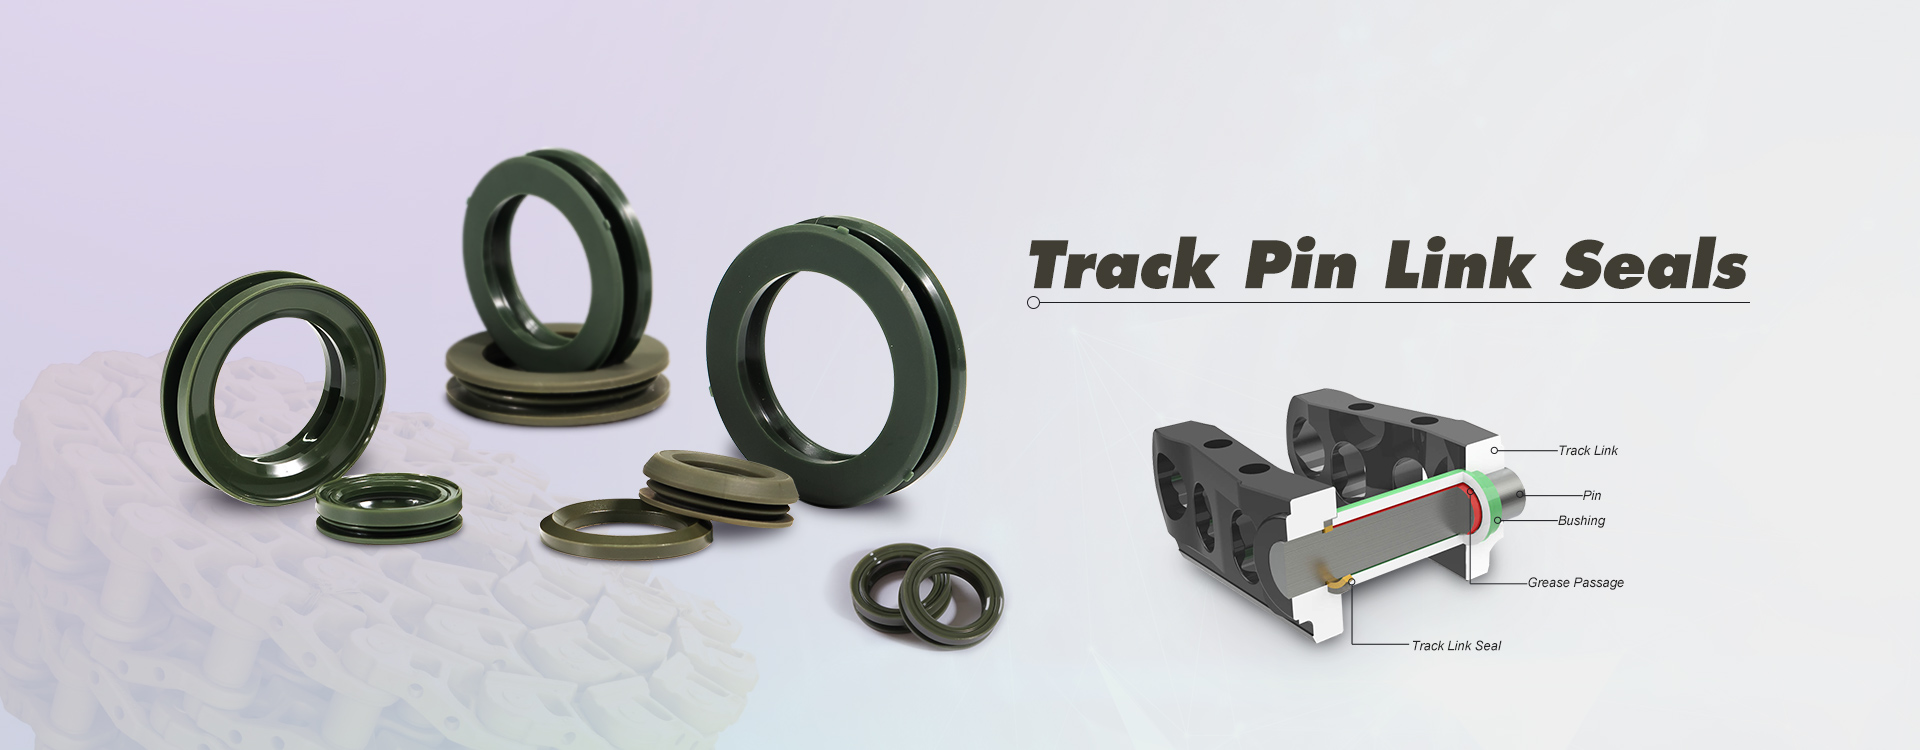 Sochie Pin Link Seals